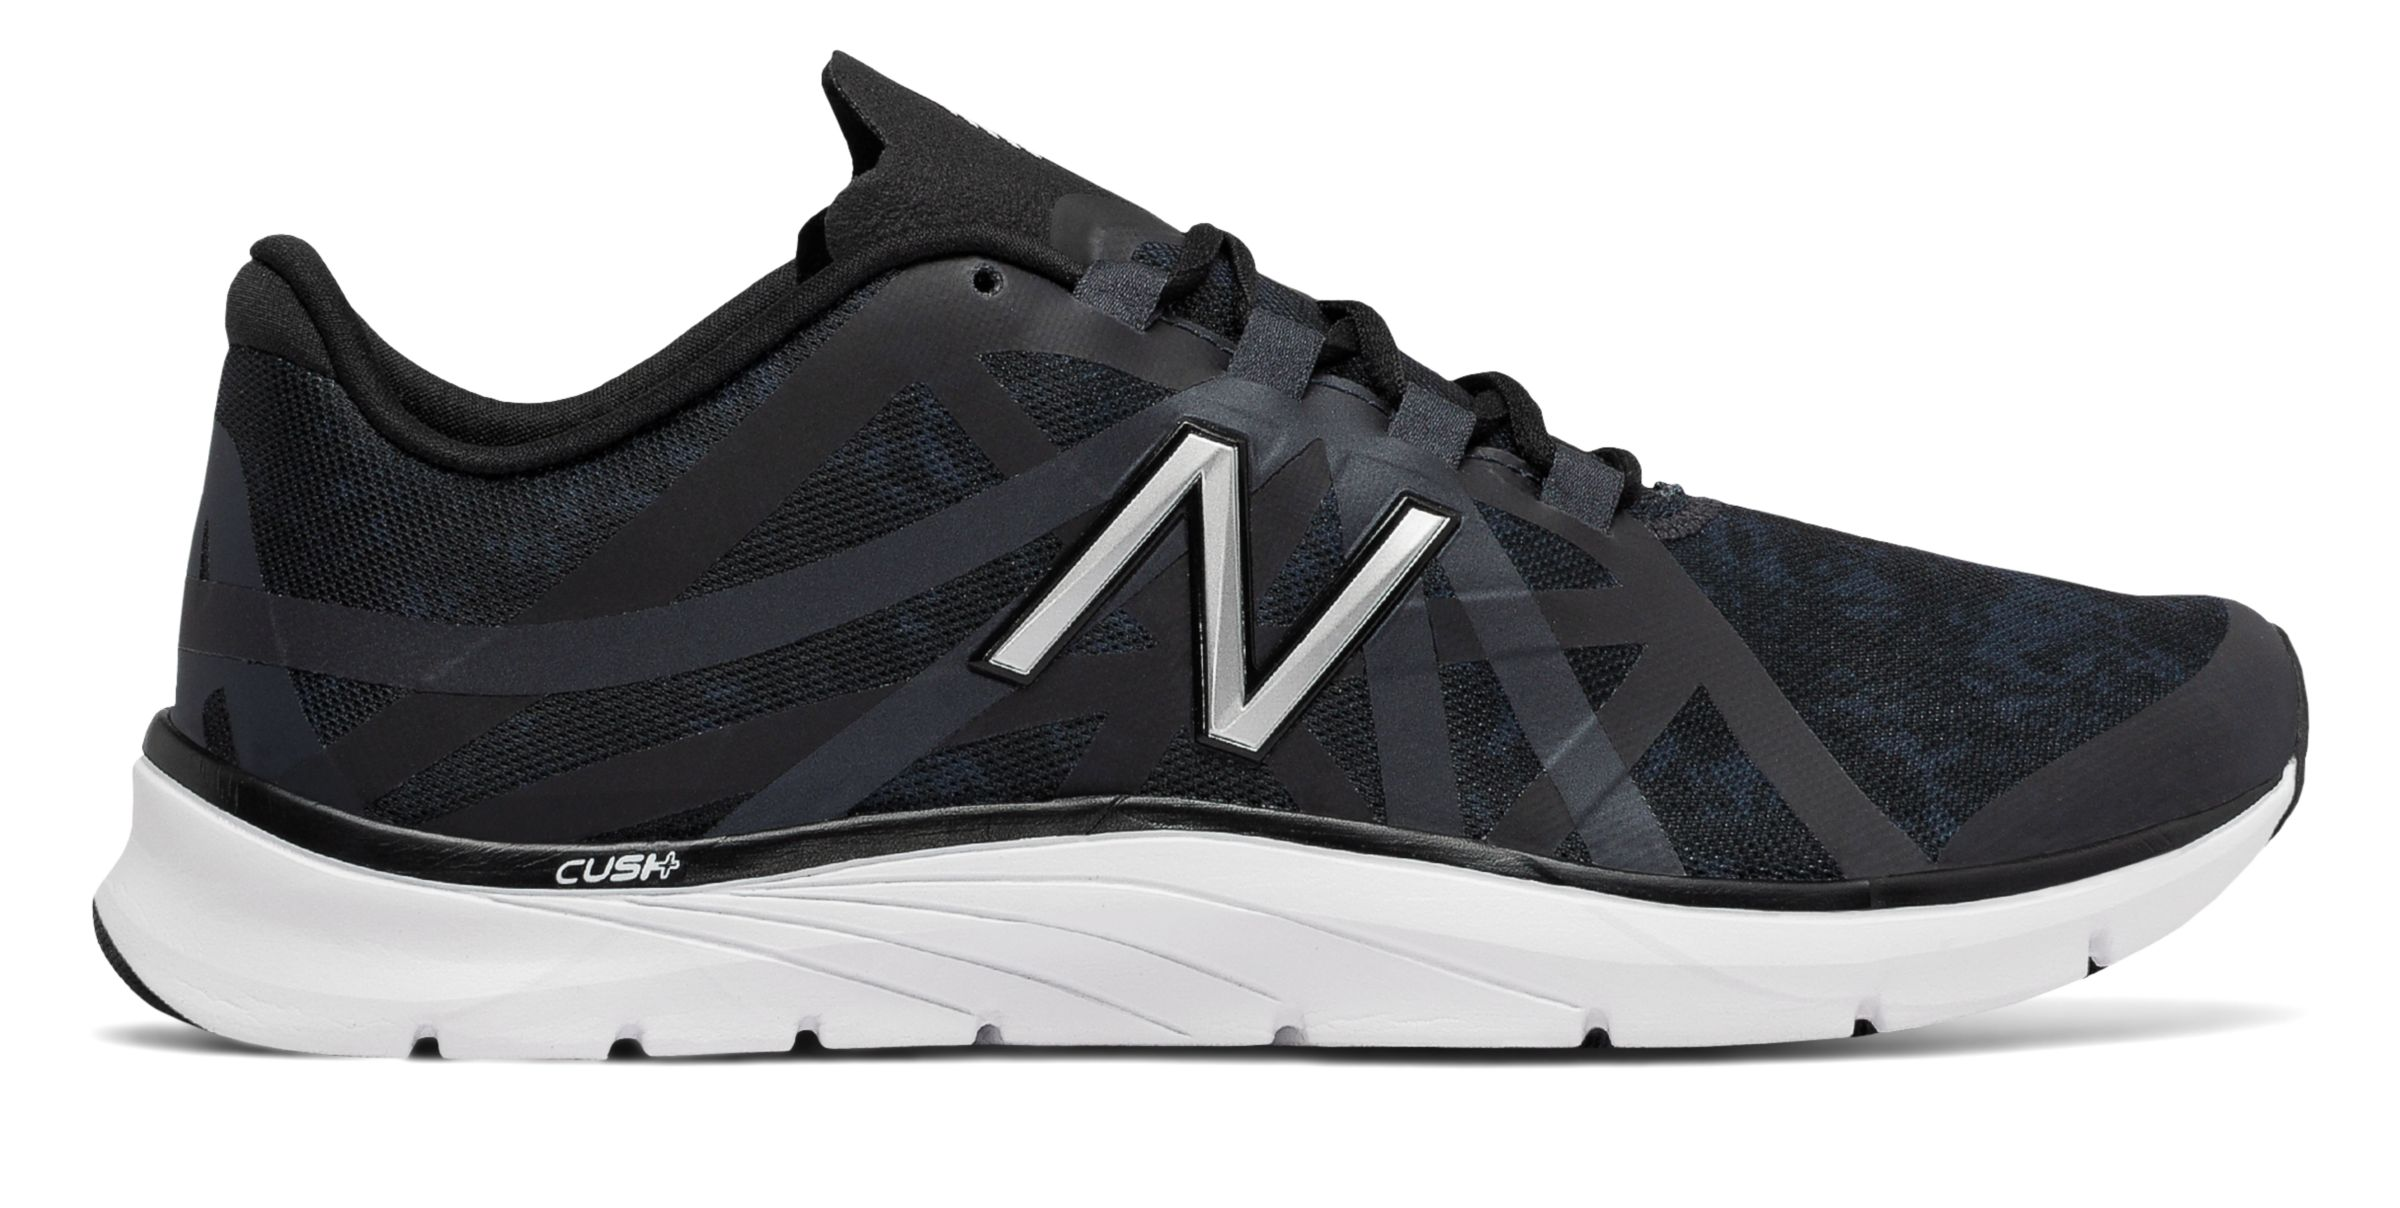 NB New Balance 811v2 Graphic Trainer, Black with Outer Space